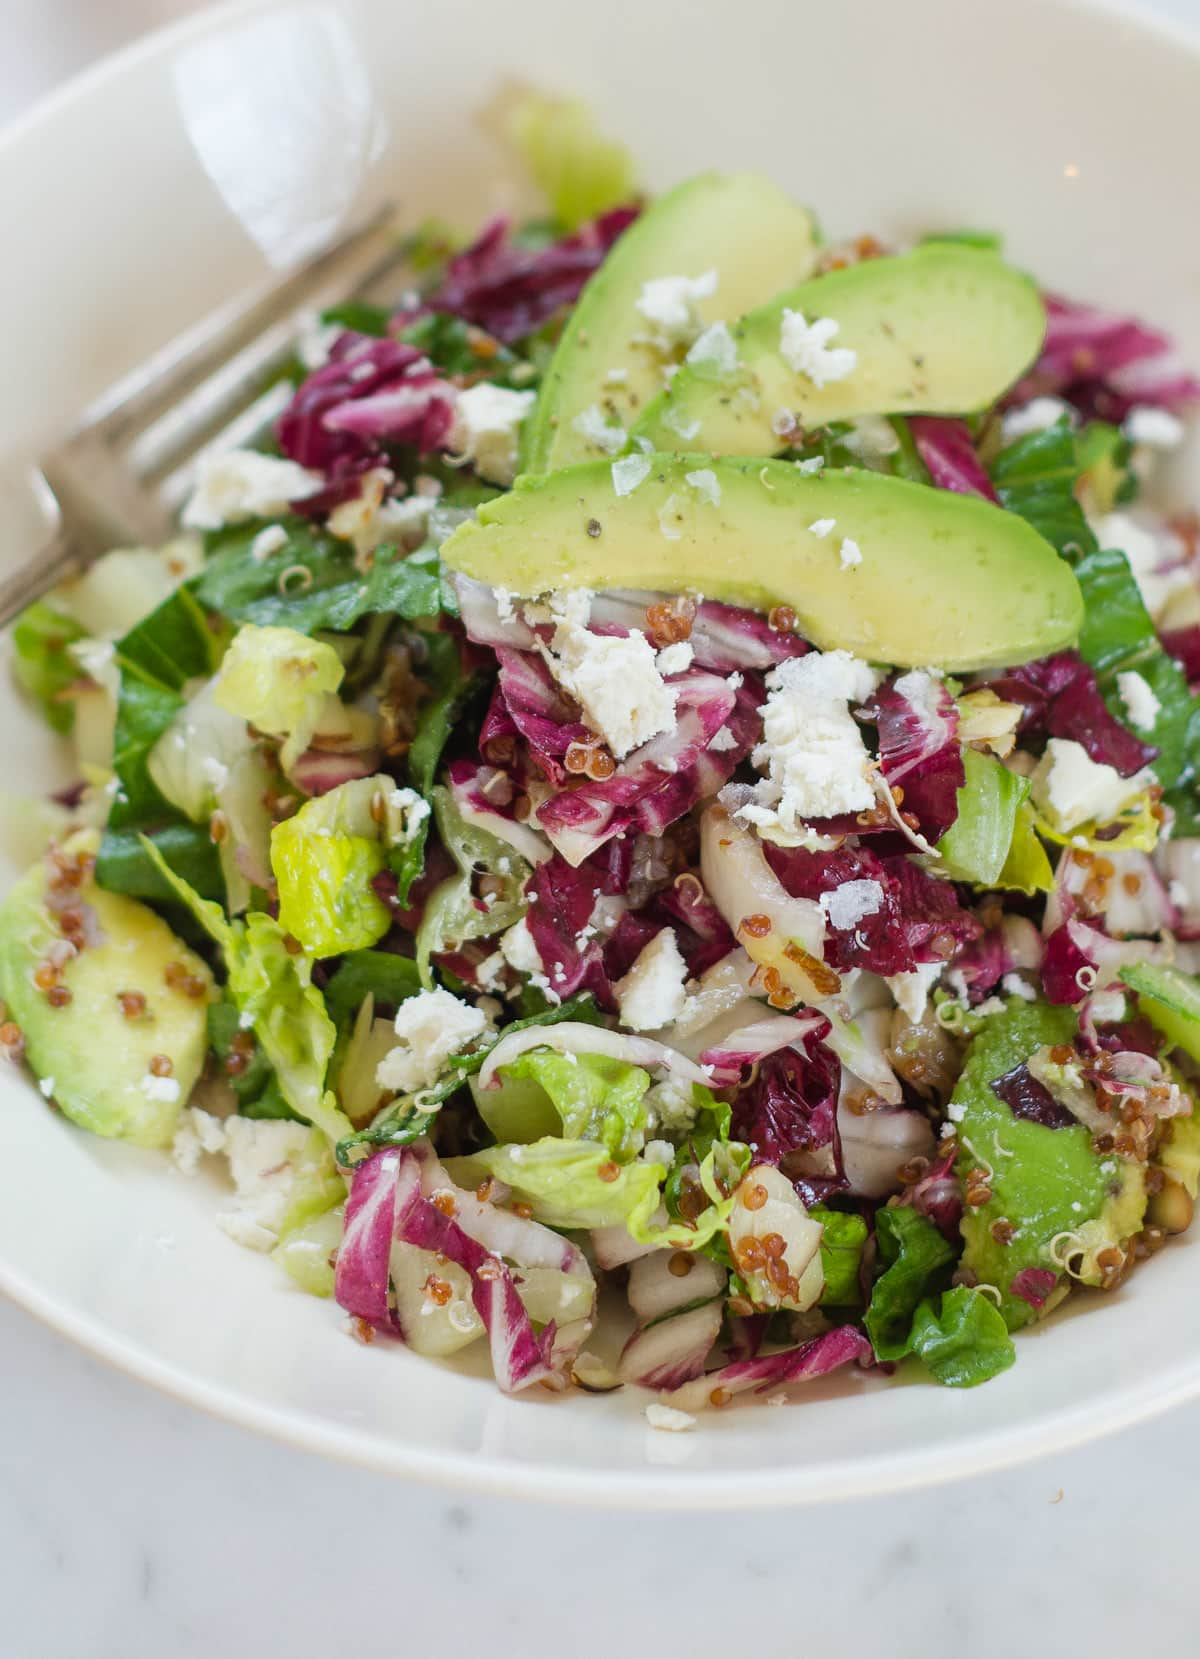 Lunch Recipe: Radicchio Salad with Avocado, Red Quinoa, & Ricotta Salata